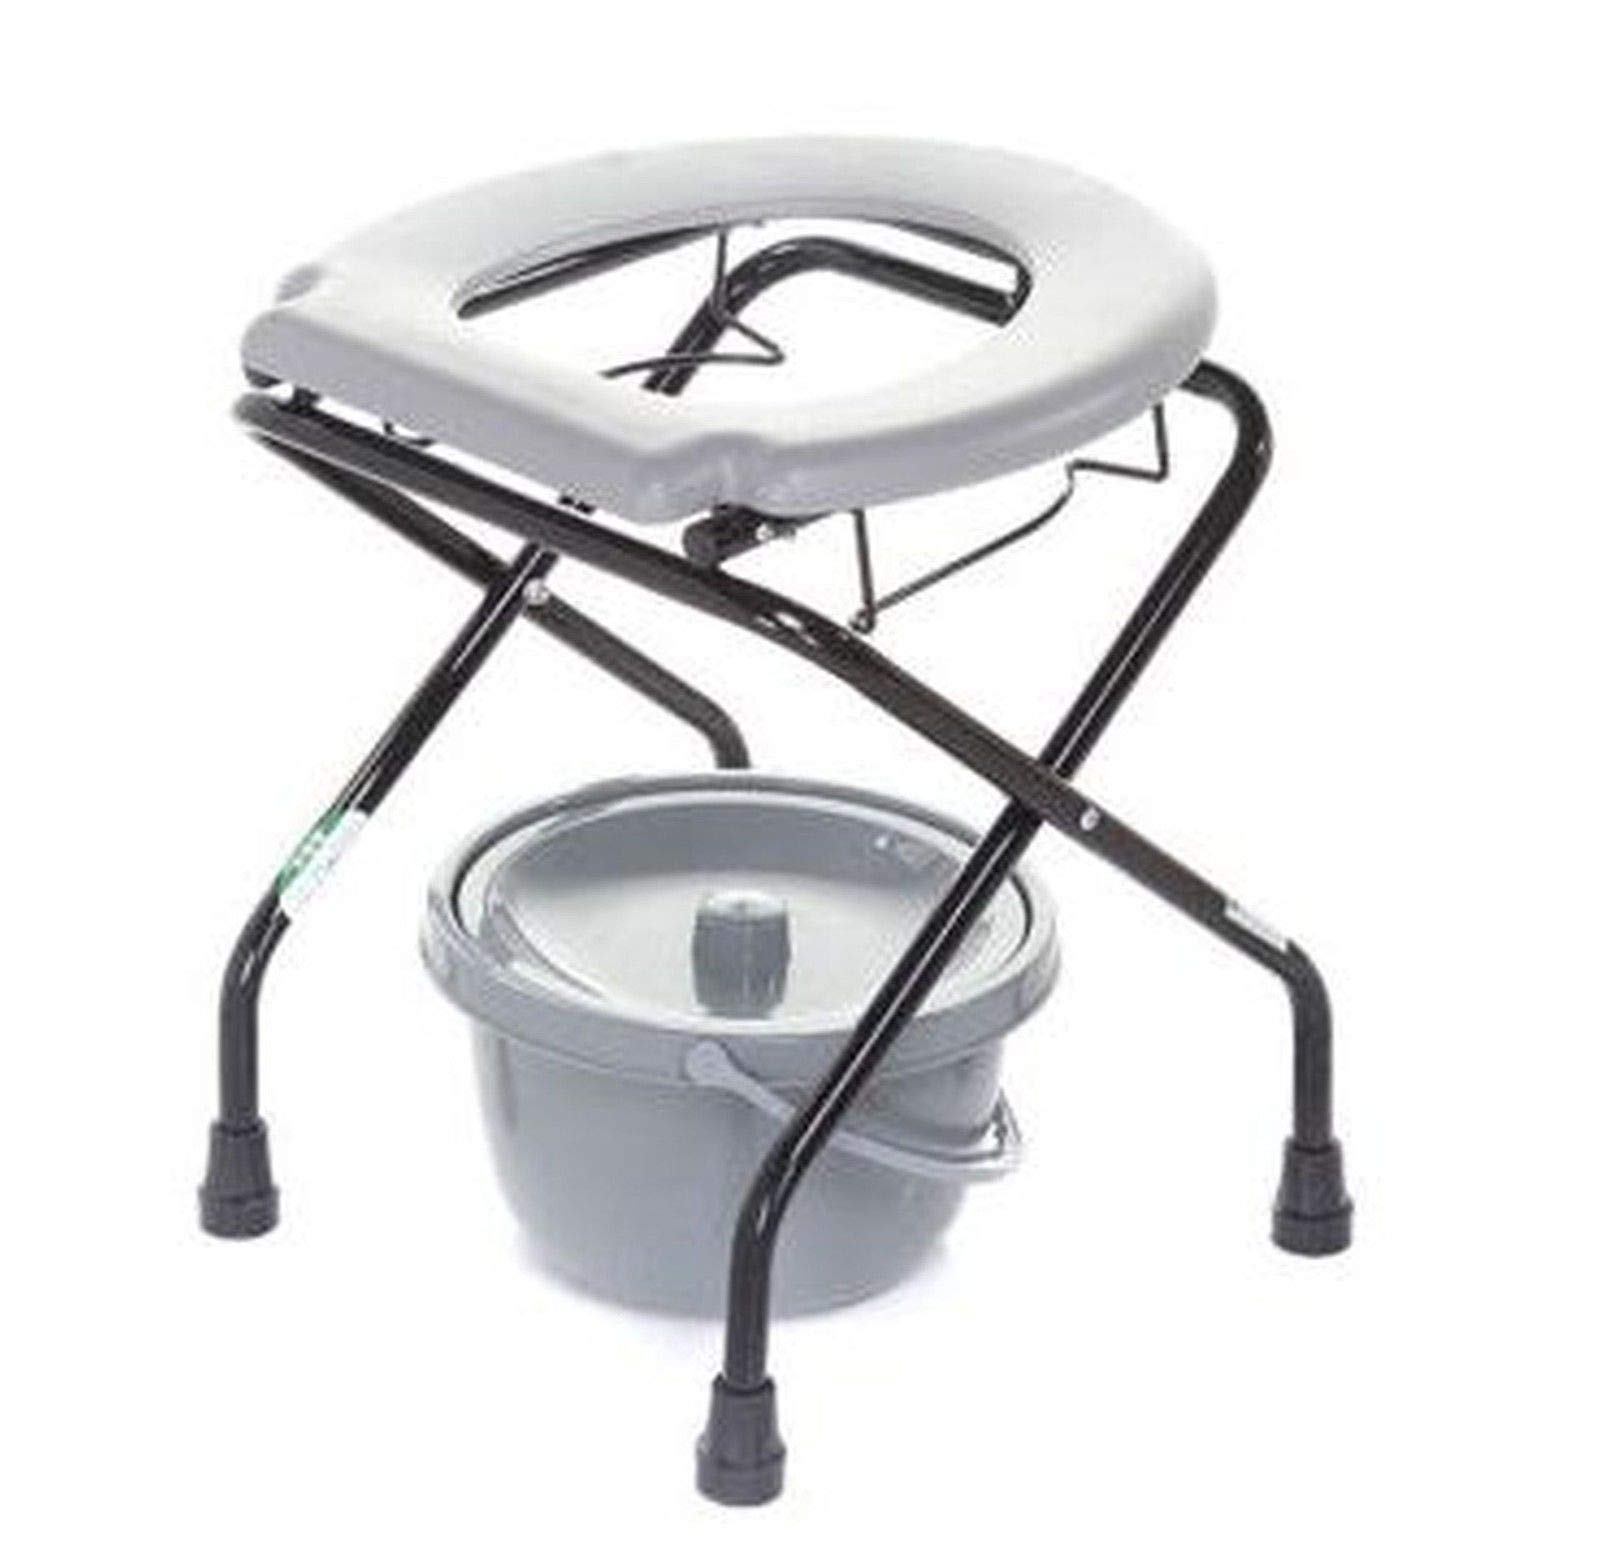 Portable Folding Toilet Commode with Bucket. Steel Frame. Bedside or Camping